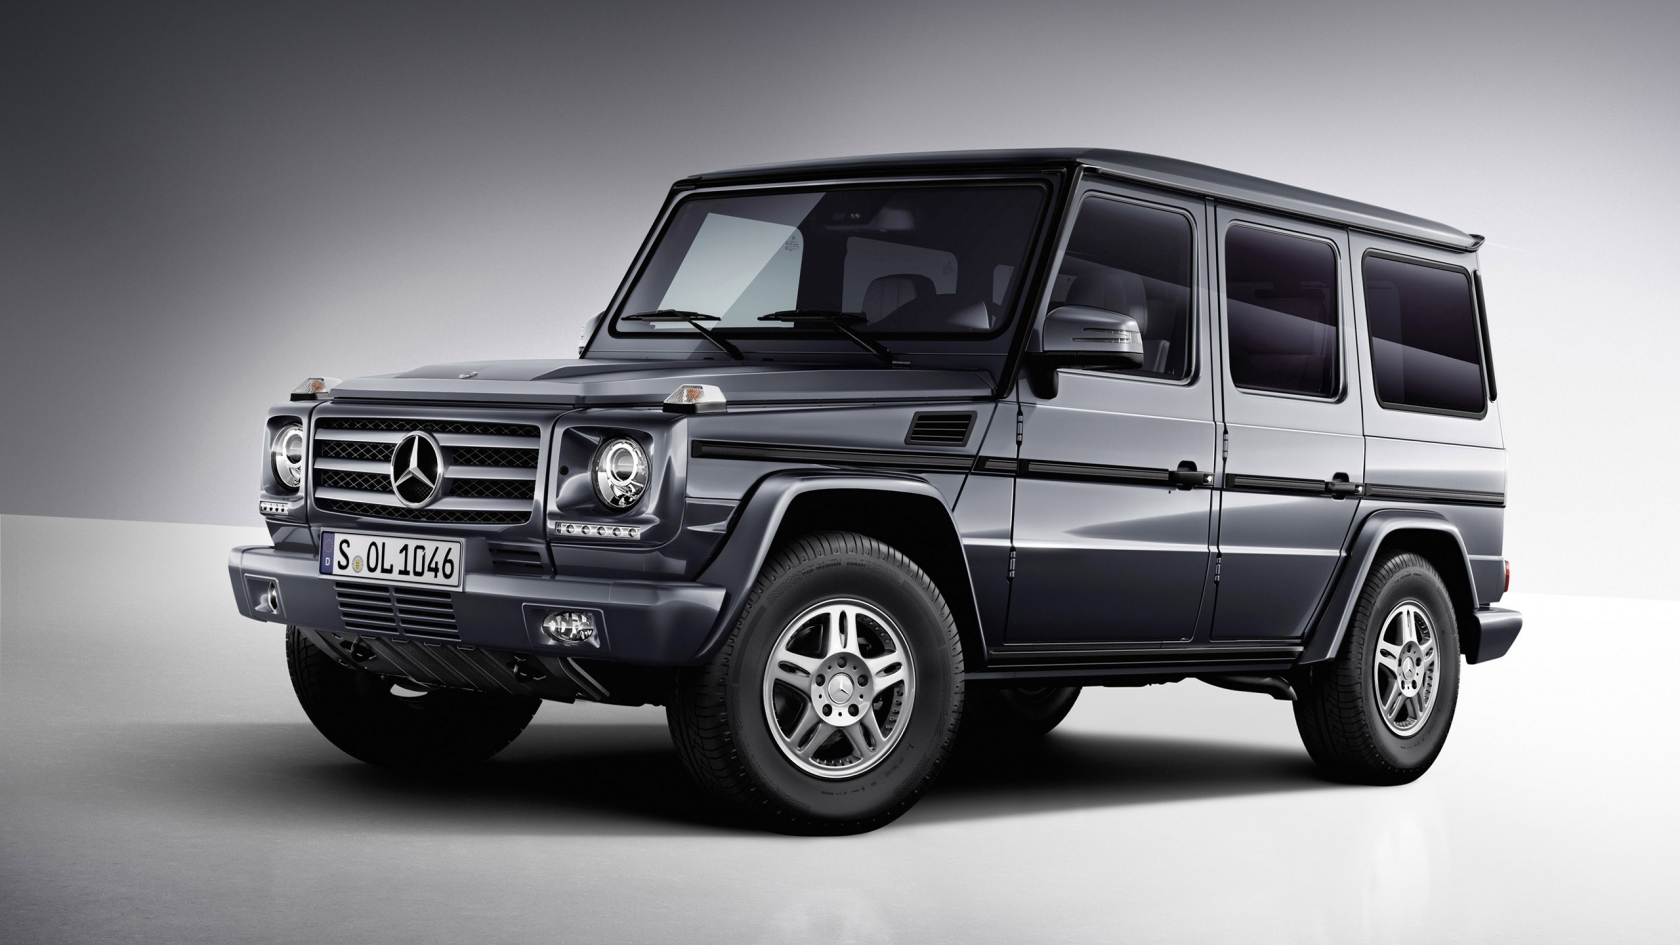 Mercedes Benz G Class Studio 2013 for 1680 x 945 HDTV resolution